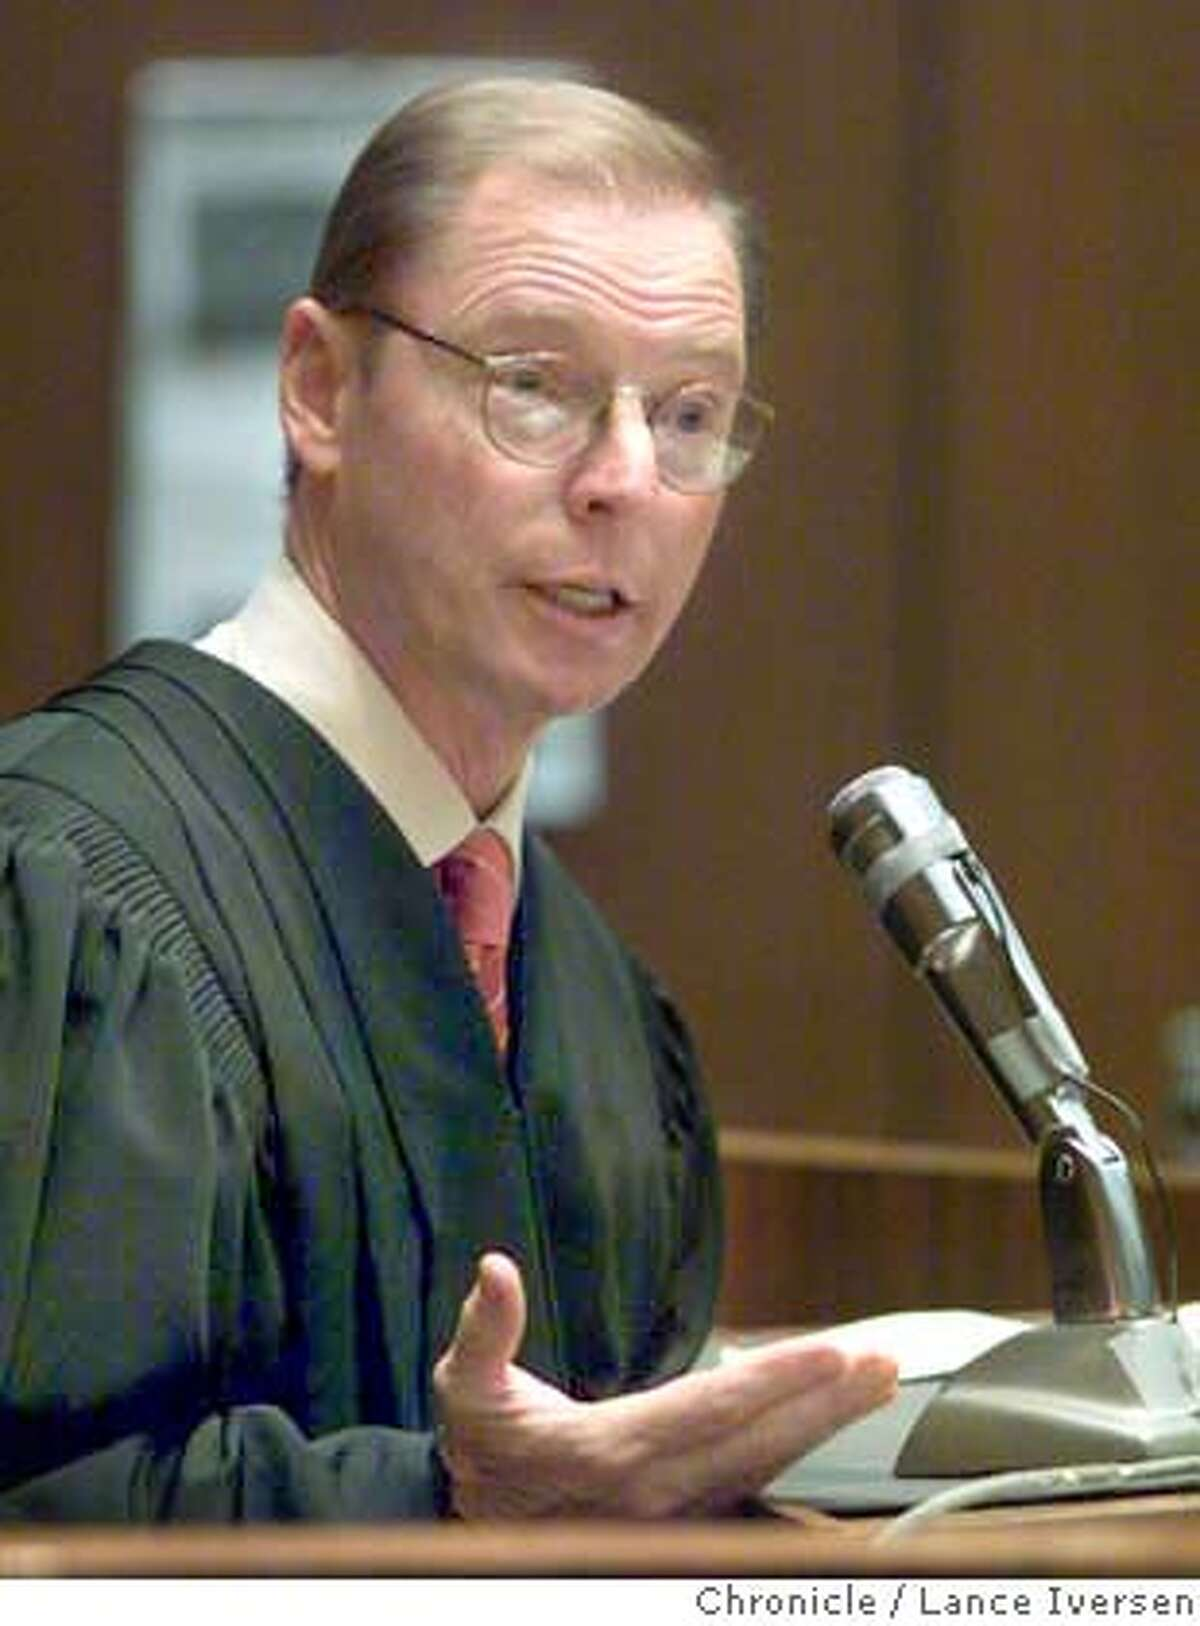 Superior Court Judge James Warren addresses the jury prior to its delivery of the verdicts in the San Francisco dog mauling trial in a courtroom in Los Angeles, Thursday, March 21, 2002. Two San Francisco attorneys, Marjorie Knoller and Robert Noel, were convicted on all five counts including a second-degree murder charge against Knoller, in the death of 33-year-old Diane Whipple. (AP Photo/Lance Iversen, Pool) ALSO RAN 04/10/02, 9/16/02 CAT DIGITAL IMAGE. POOL PHOTO